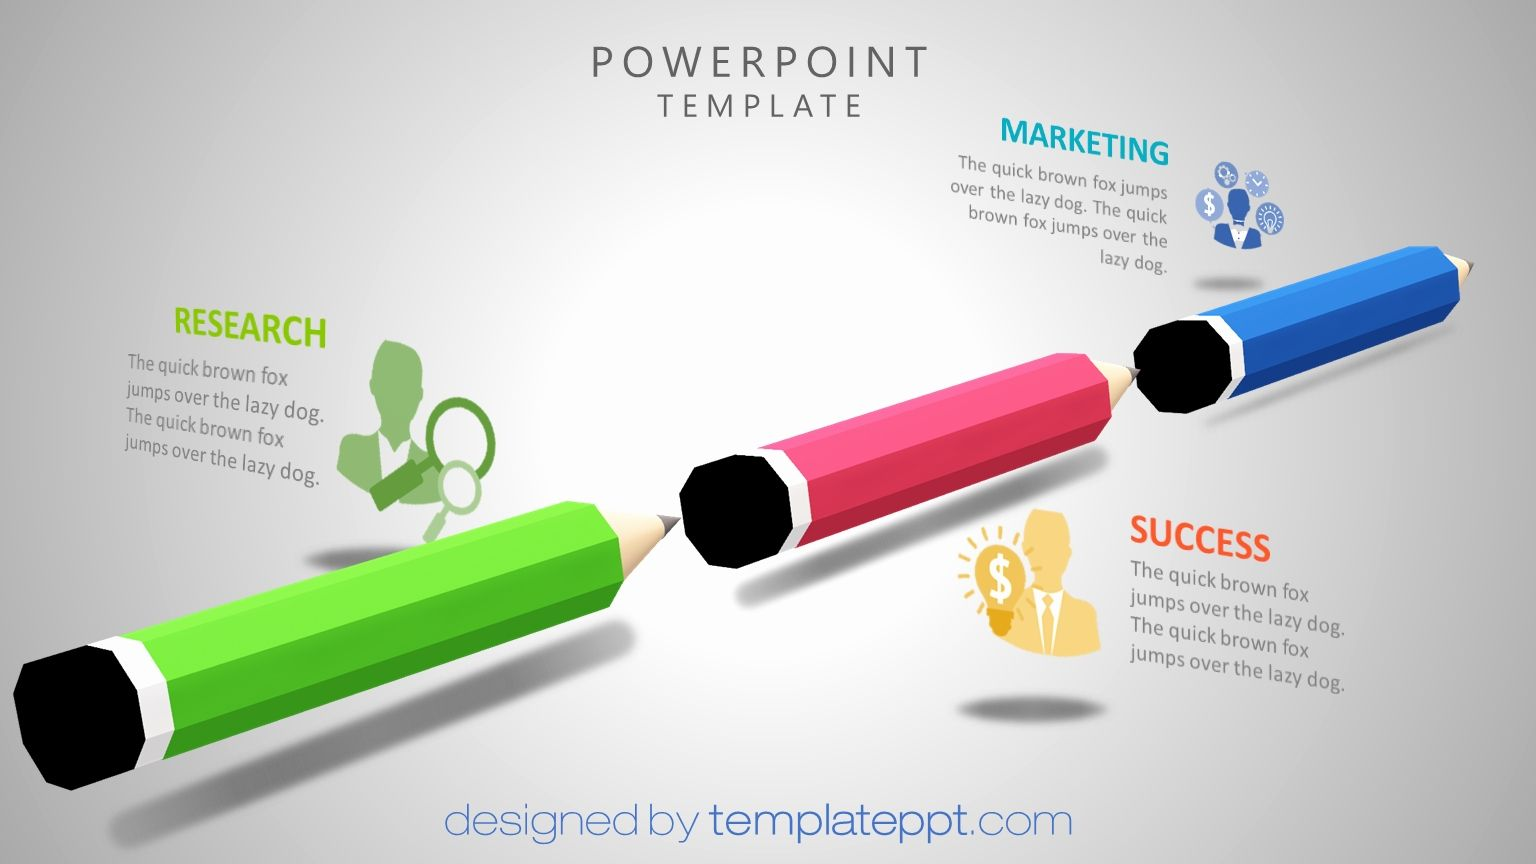 Powerpoint animated templates free download beautiful best animated powerpoint animated templates free download beautiful best animated ppt templates free animation effects toneelgroepblik Images